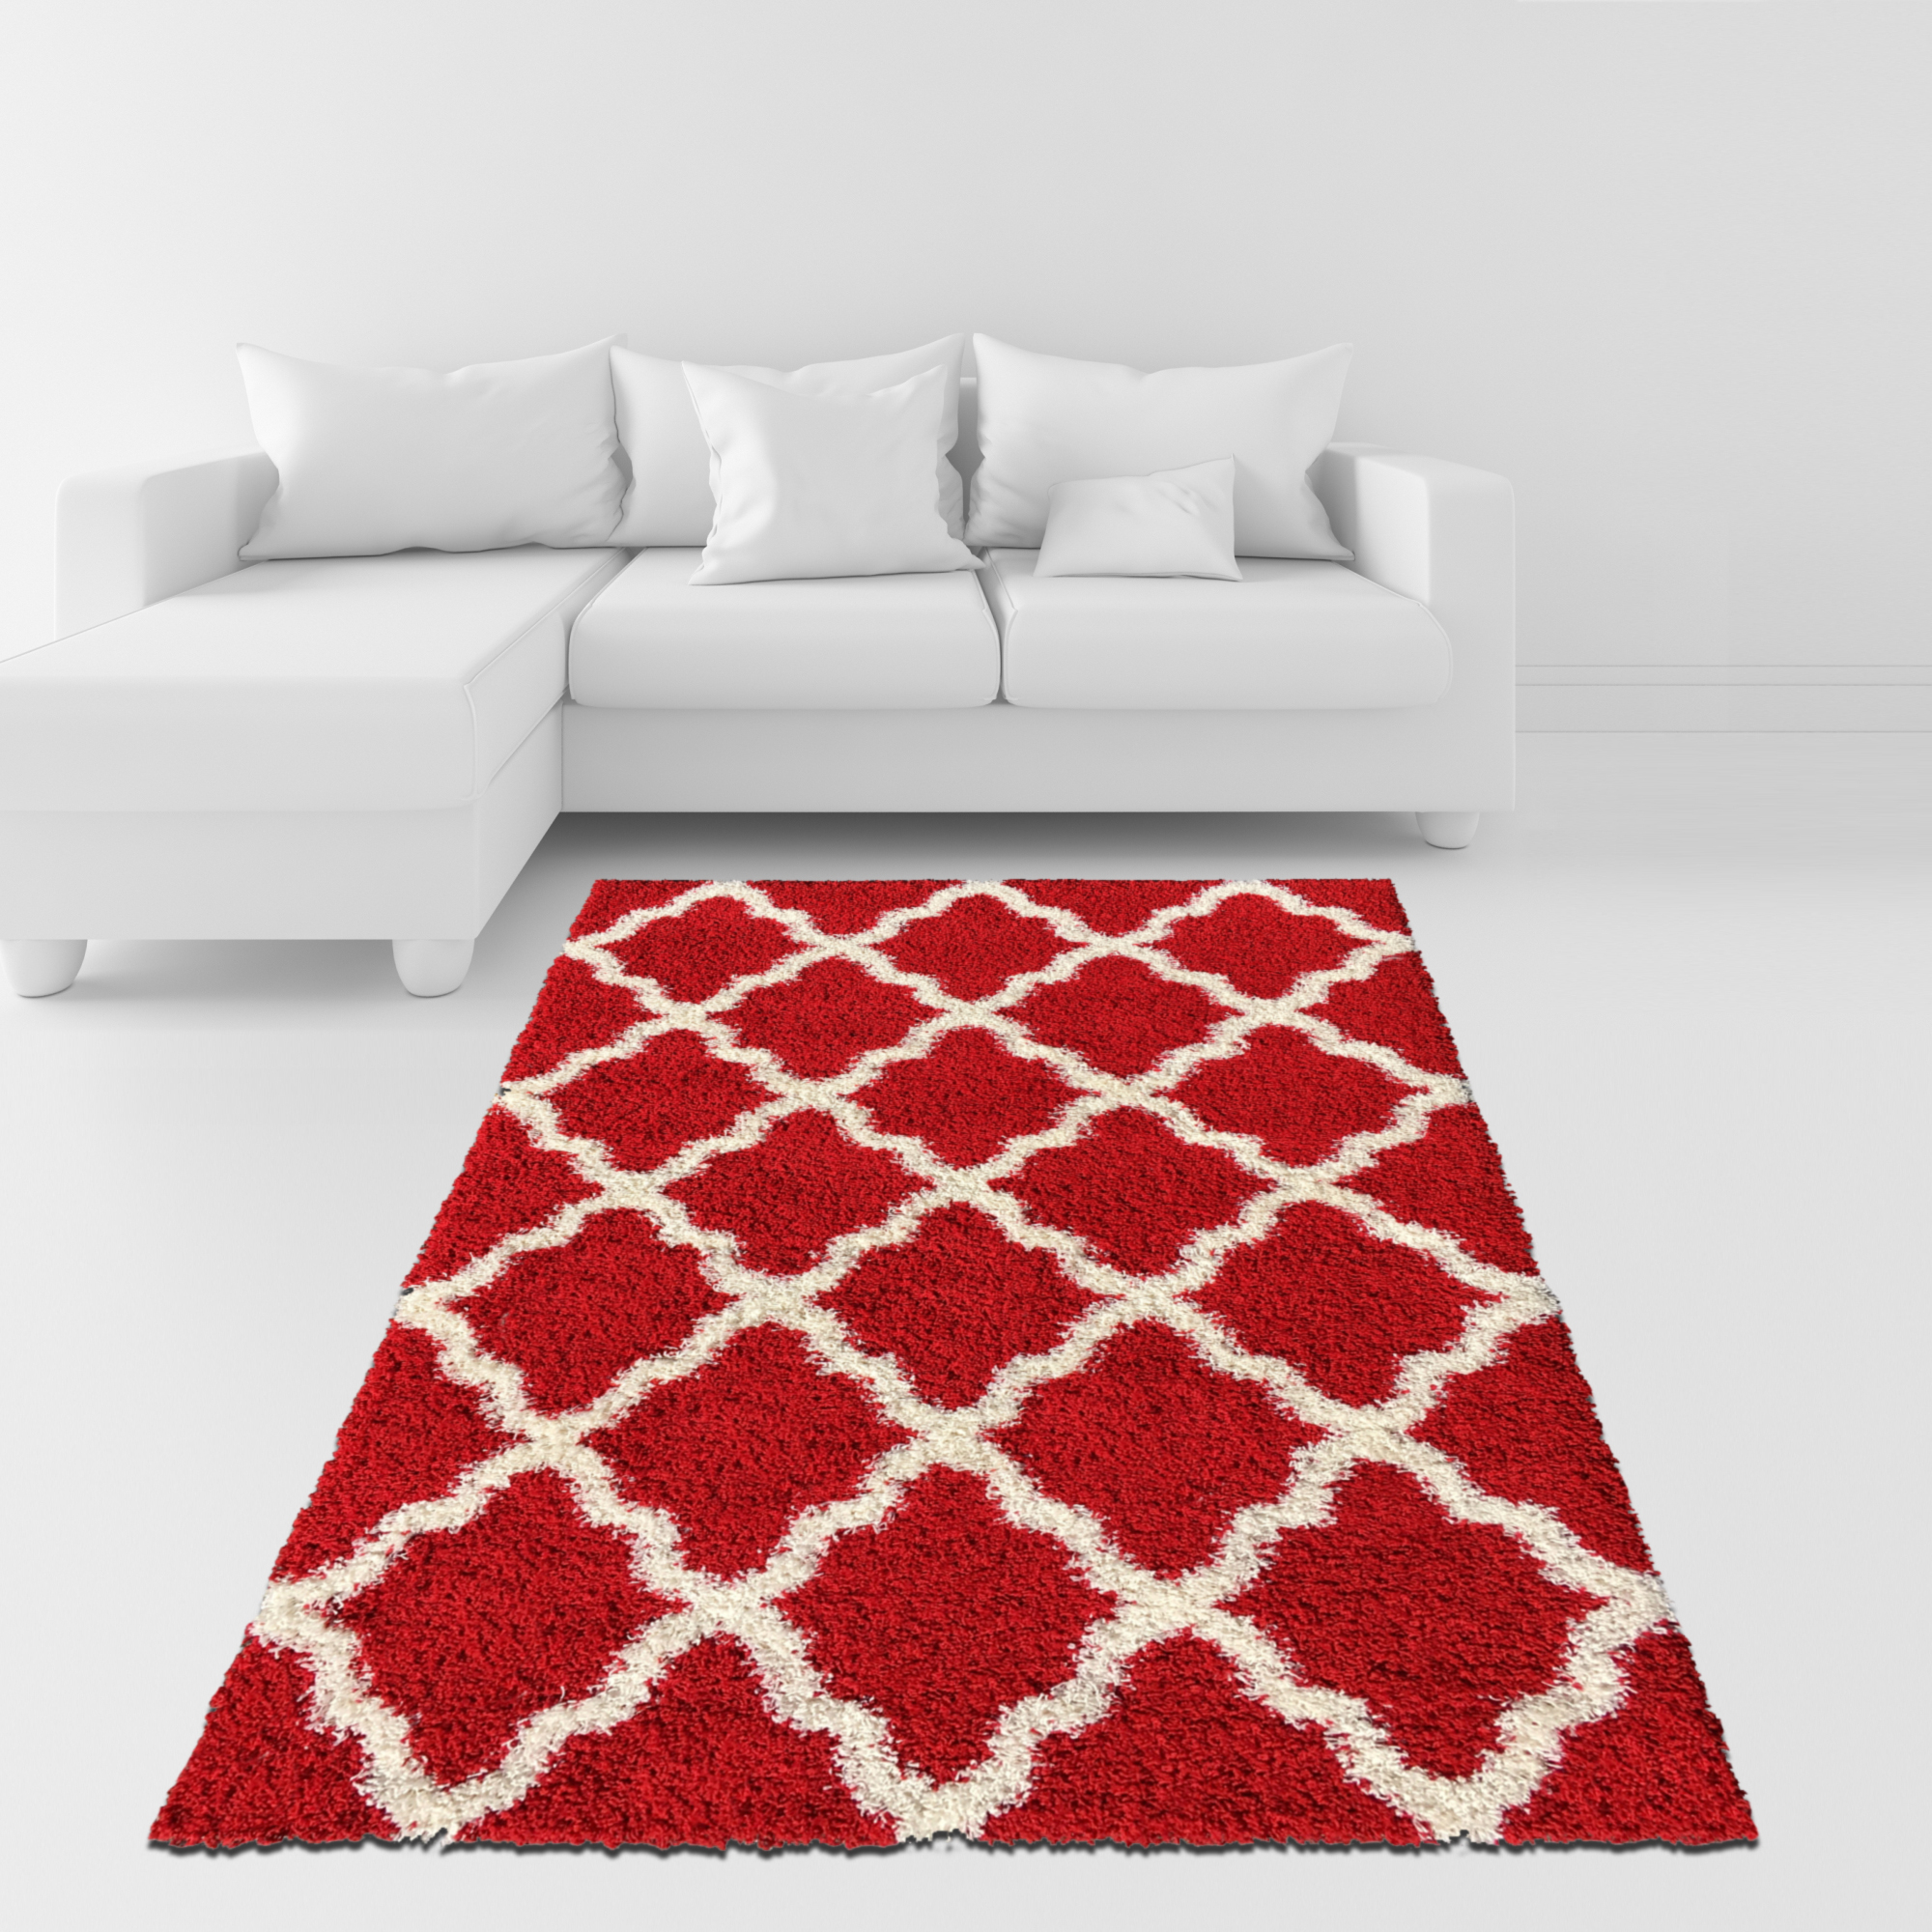 Maxy Home Bella Collection BE-2890 Anti-Bacterial Shag Area Rugs 60-inch-by-84-inch 5'x7' by Rugnur